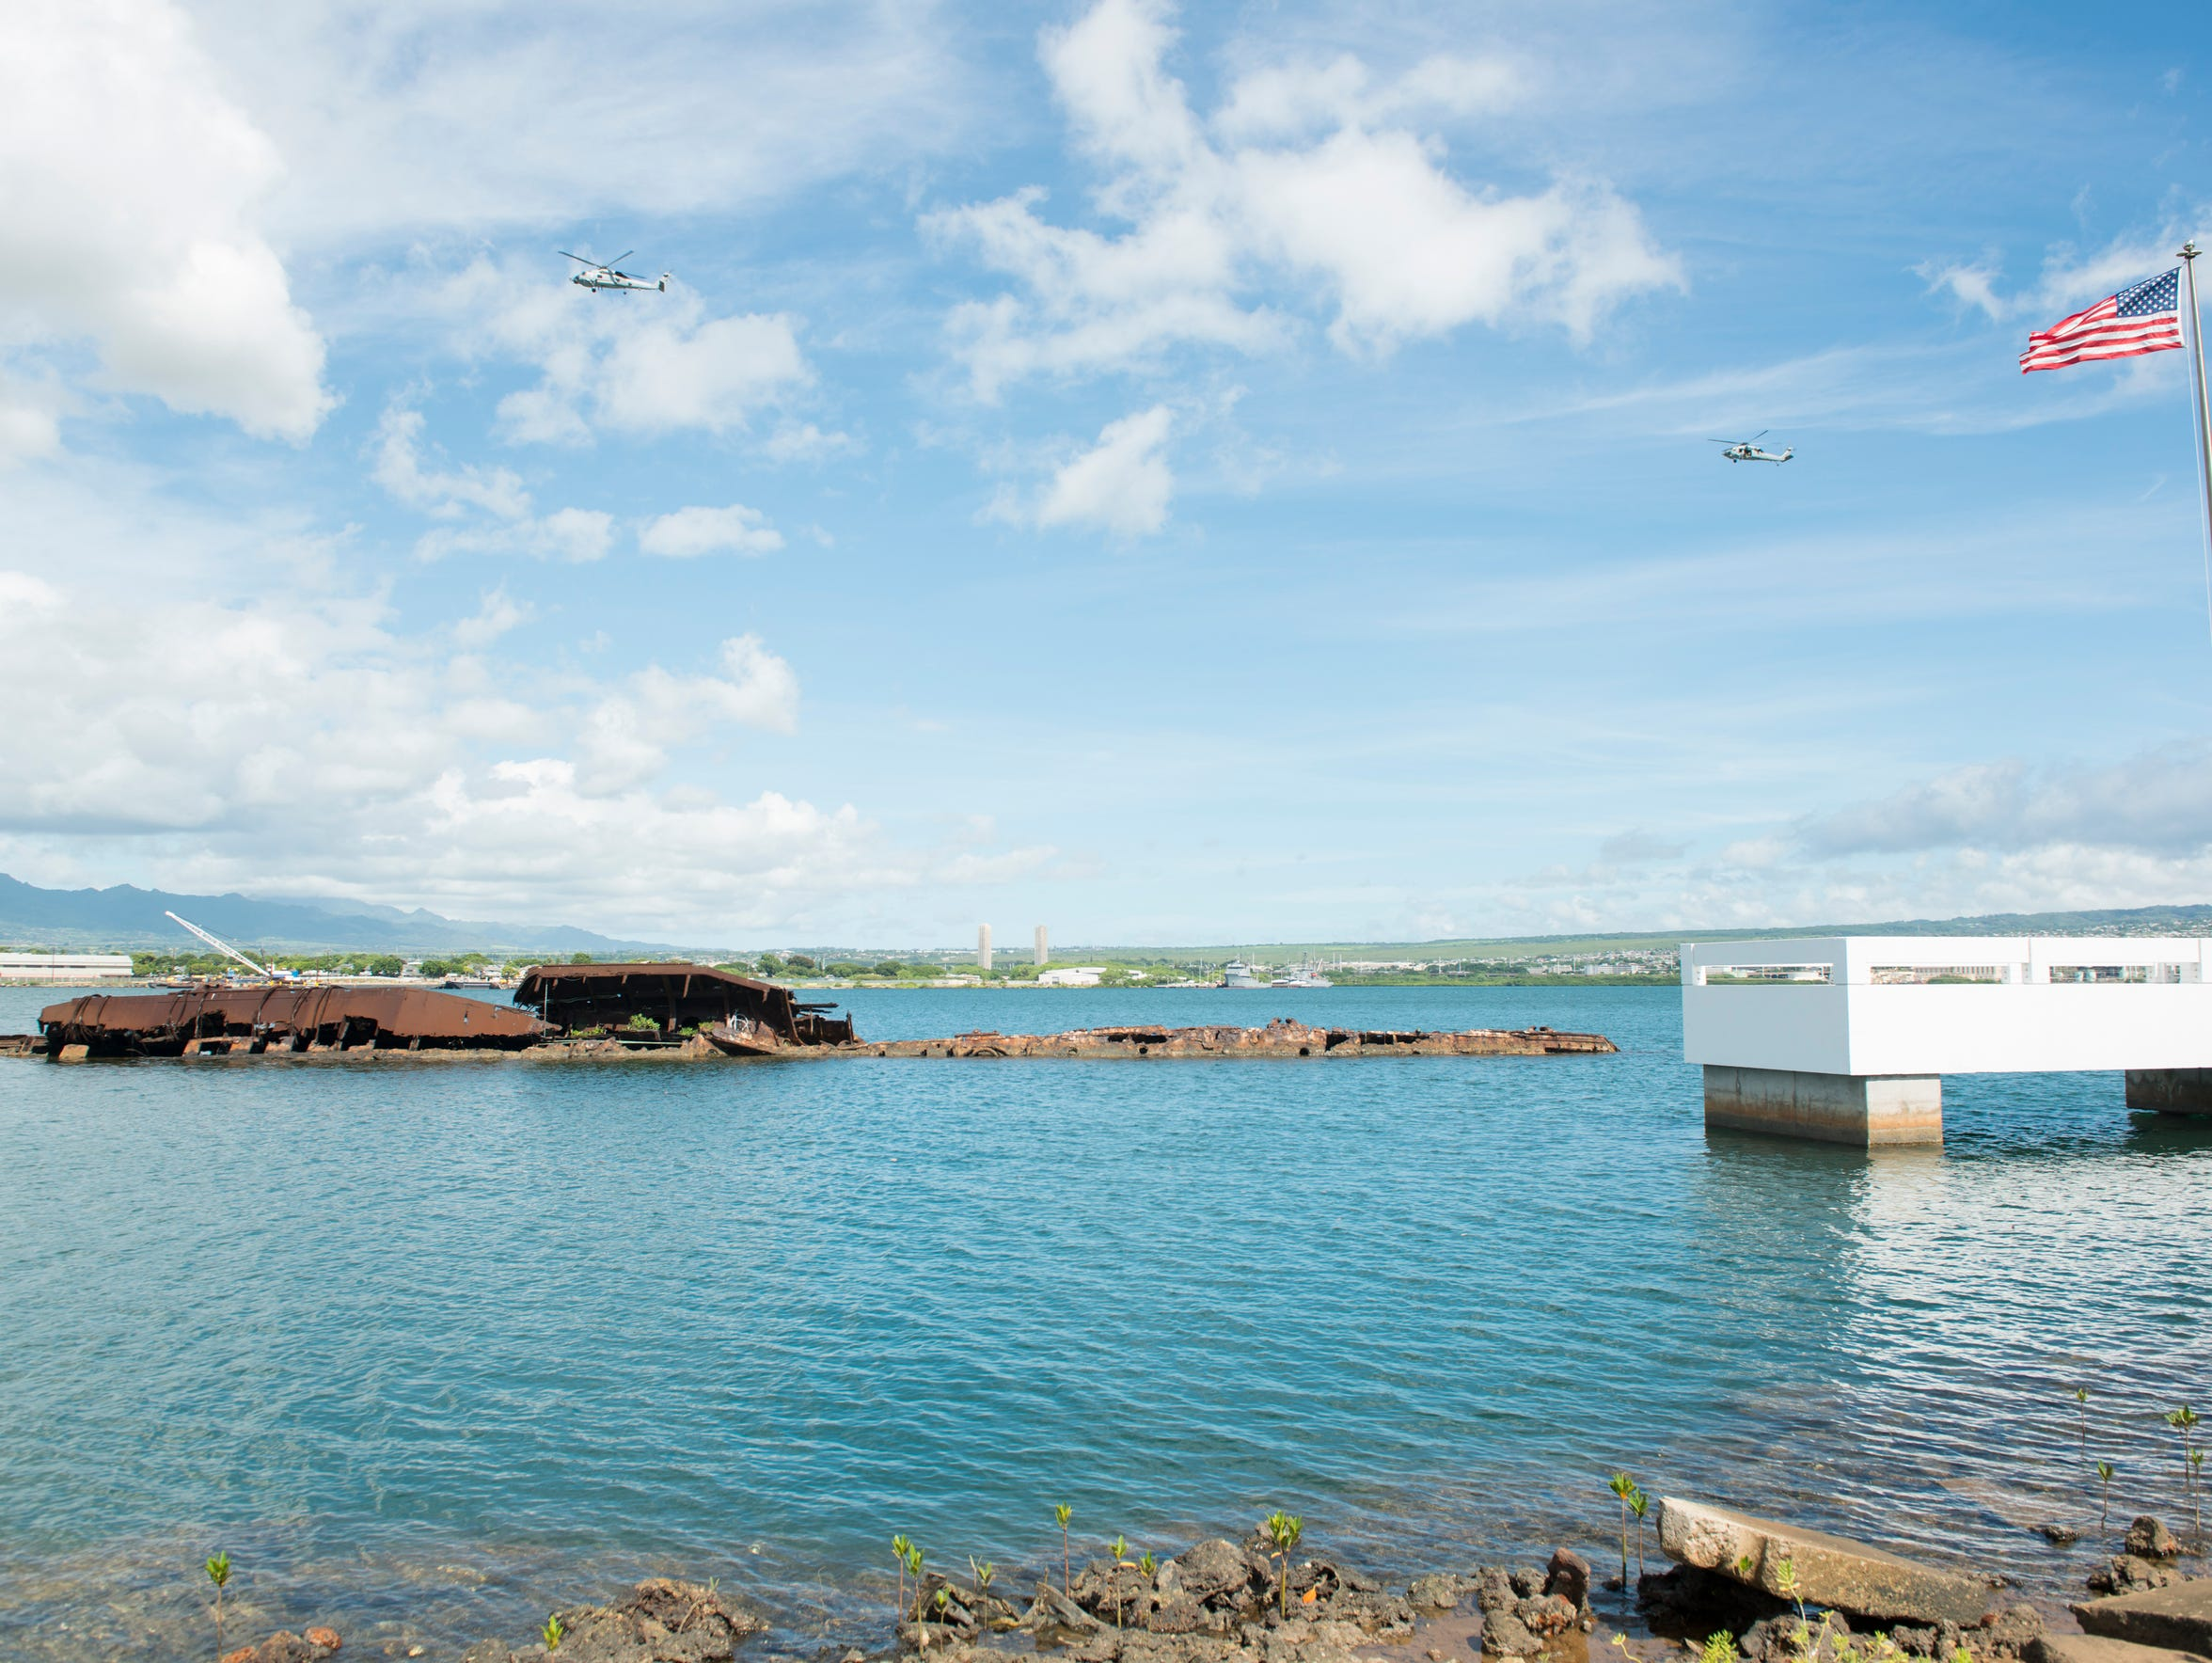 The partially exposed wreckage of the USS Utah lies